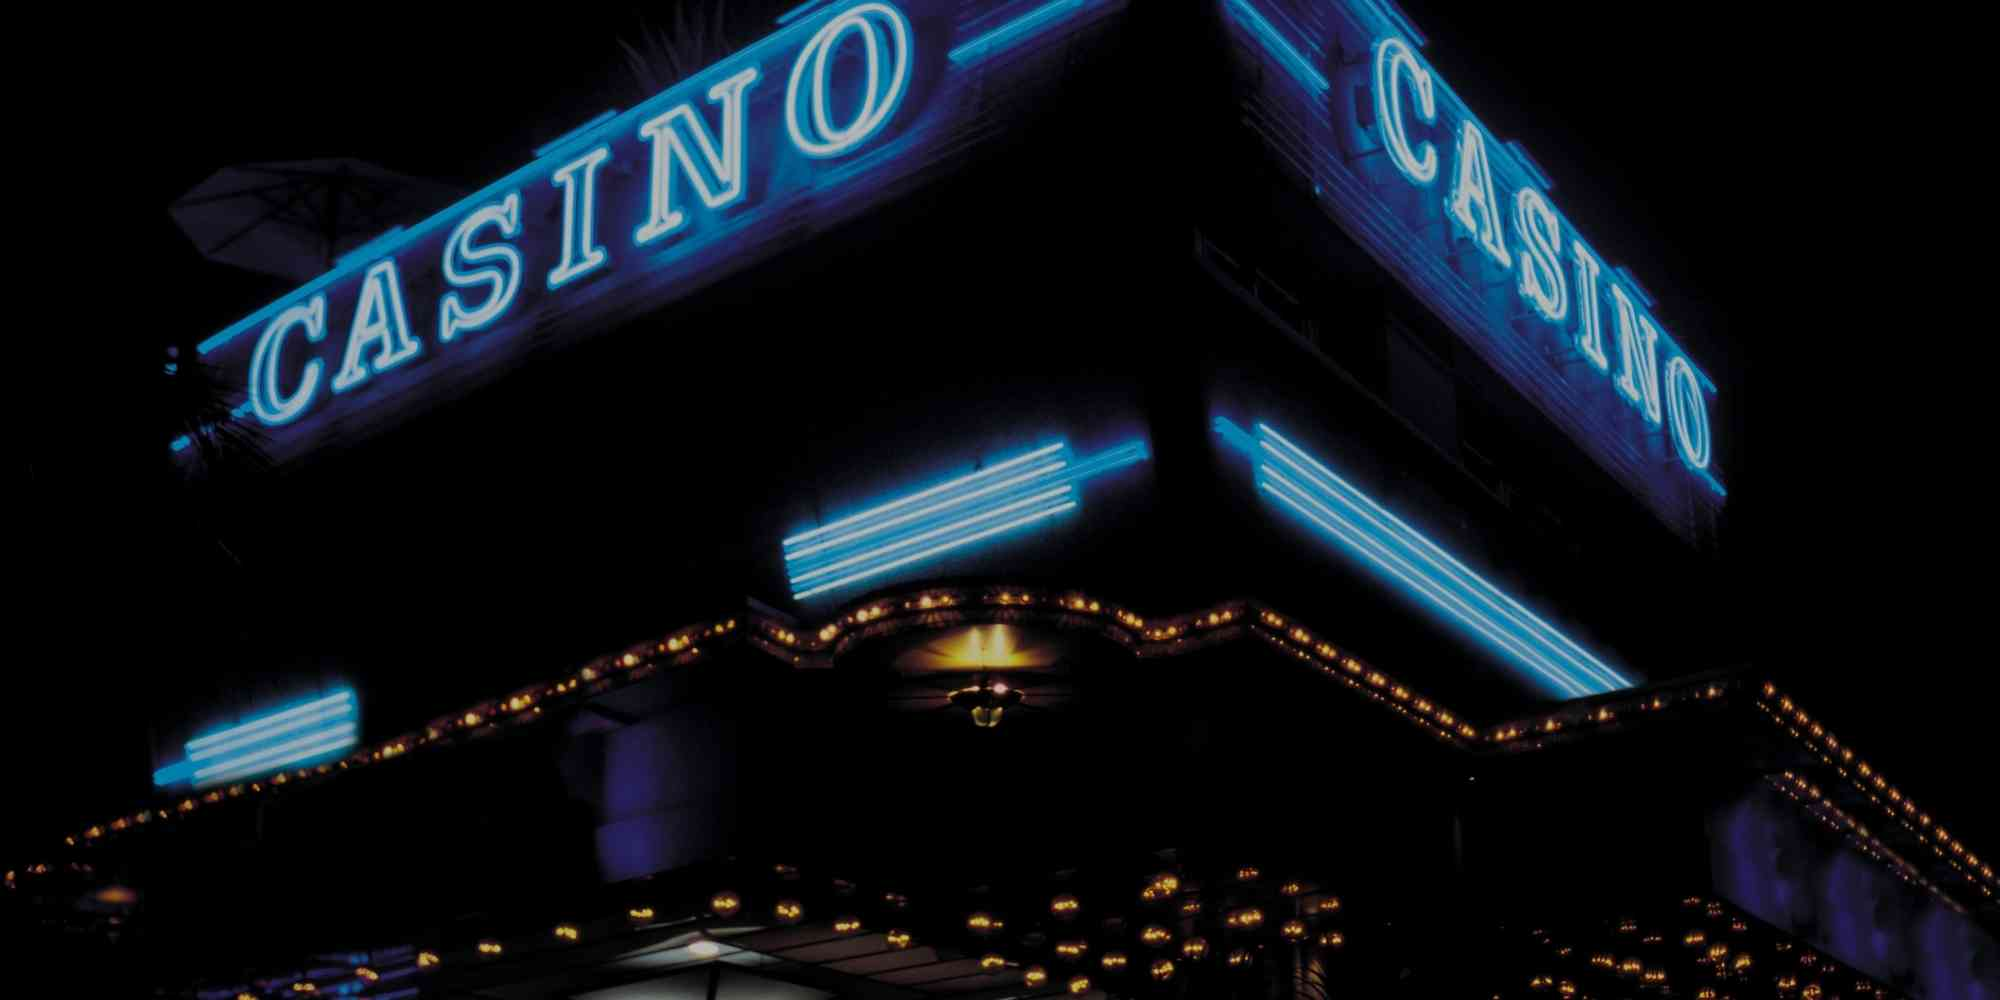 What Are The Best Days To Go To The Casino?